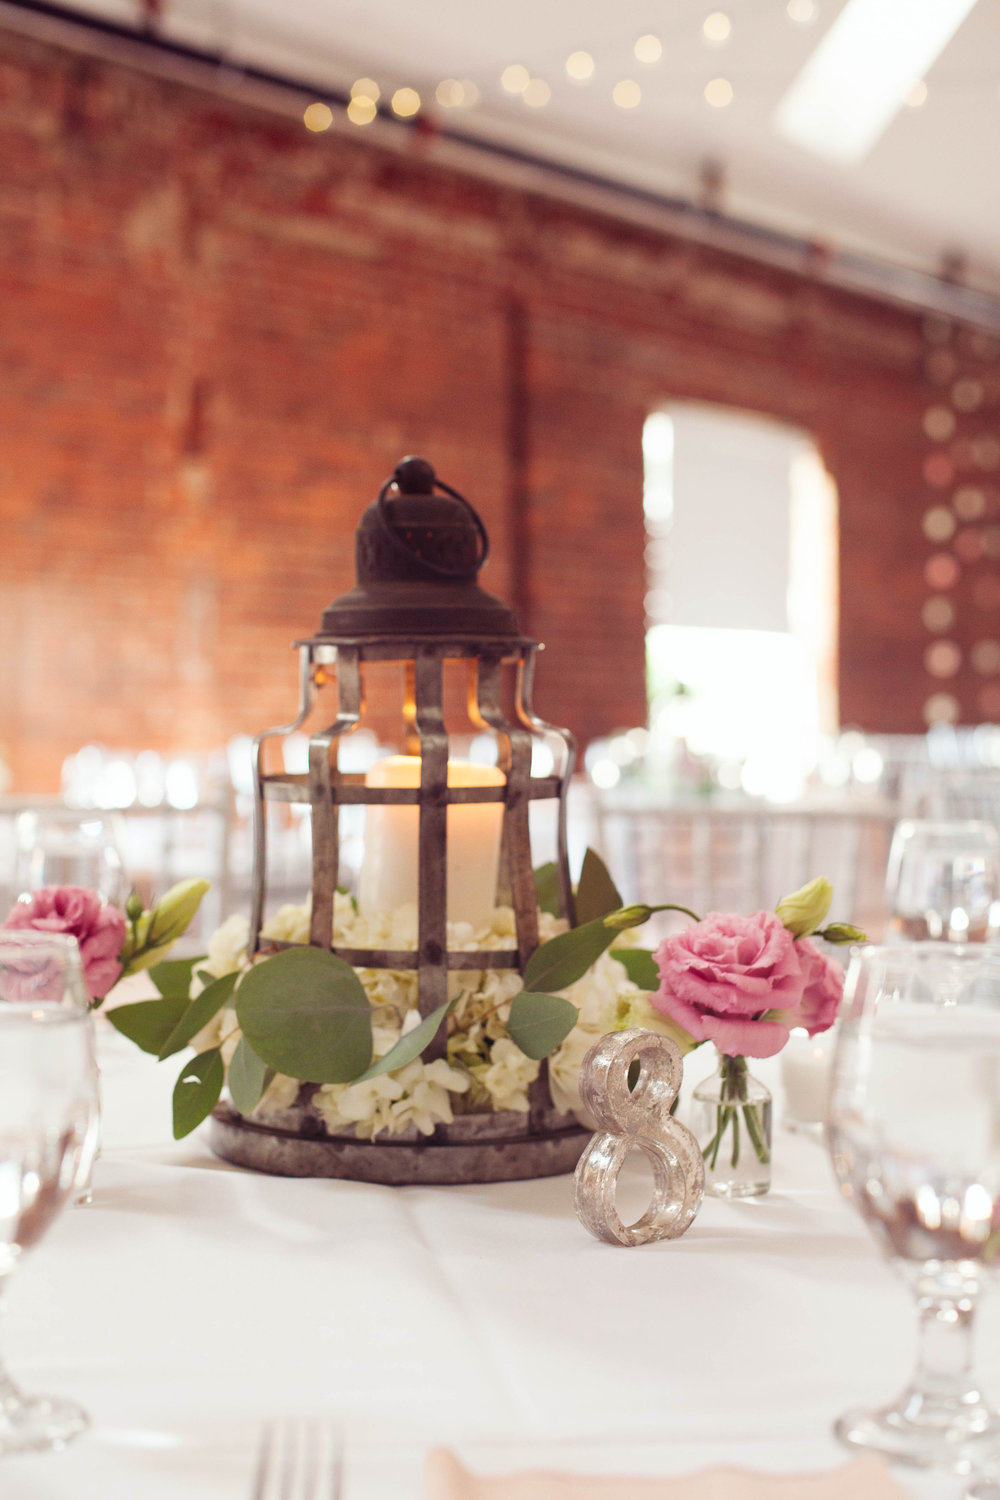 The Great Room at Top of the Hill Wedding - Sarah Morrel Photography